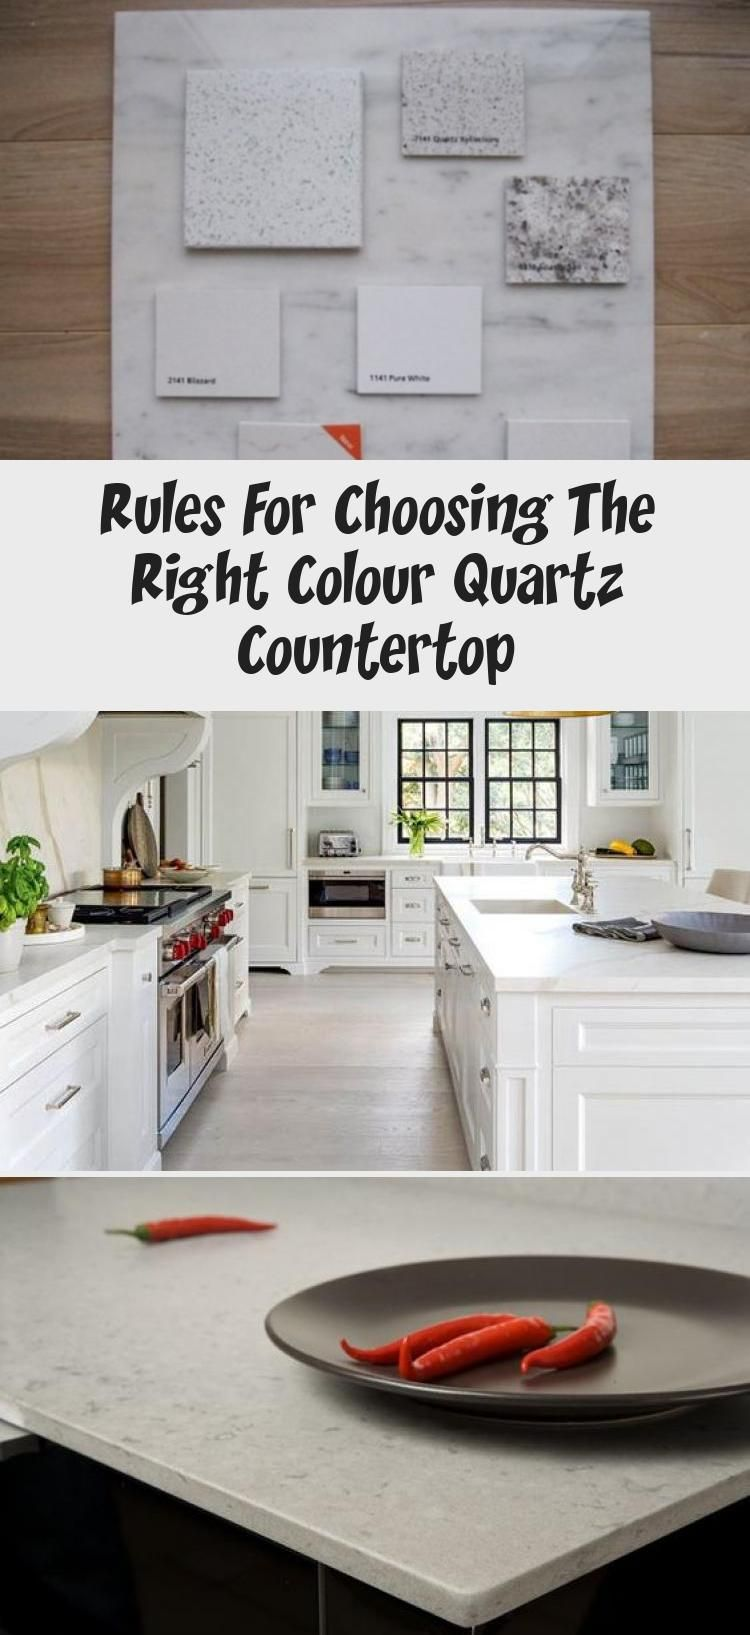 Rules For Choosing The Right Colour Quartz Countertop Maria